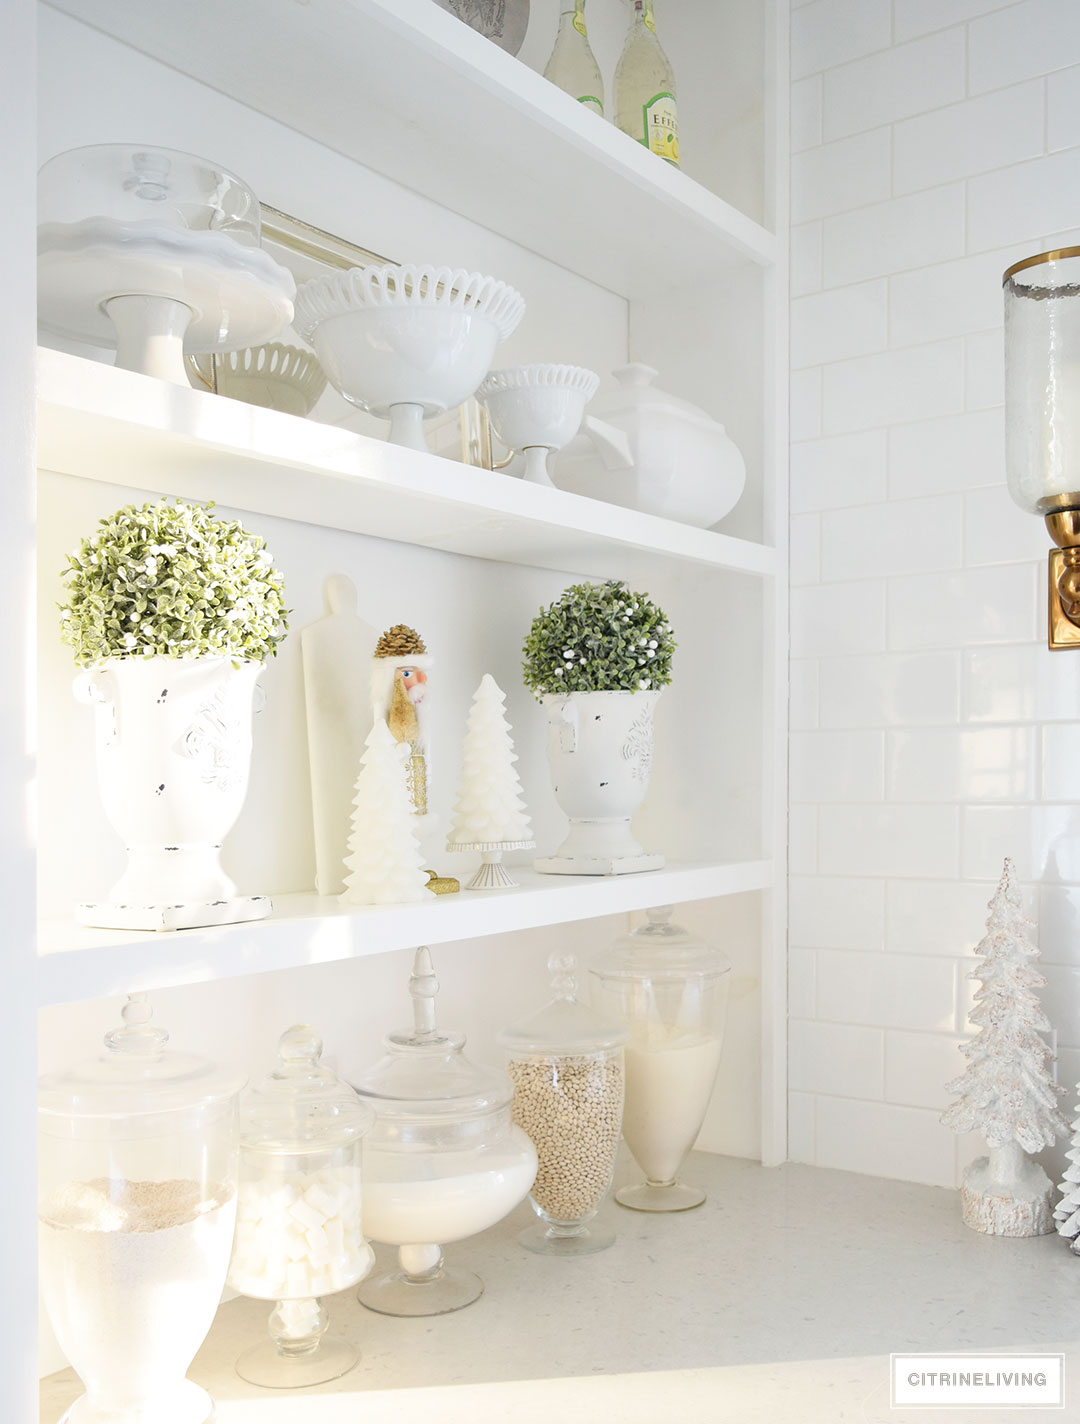 Style your shelves like a pro - keep it simple for the holidays and only decorate one shelf to keep the look from becoming too cluttered.